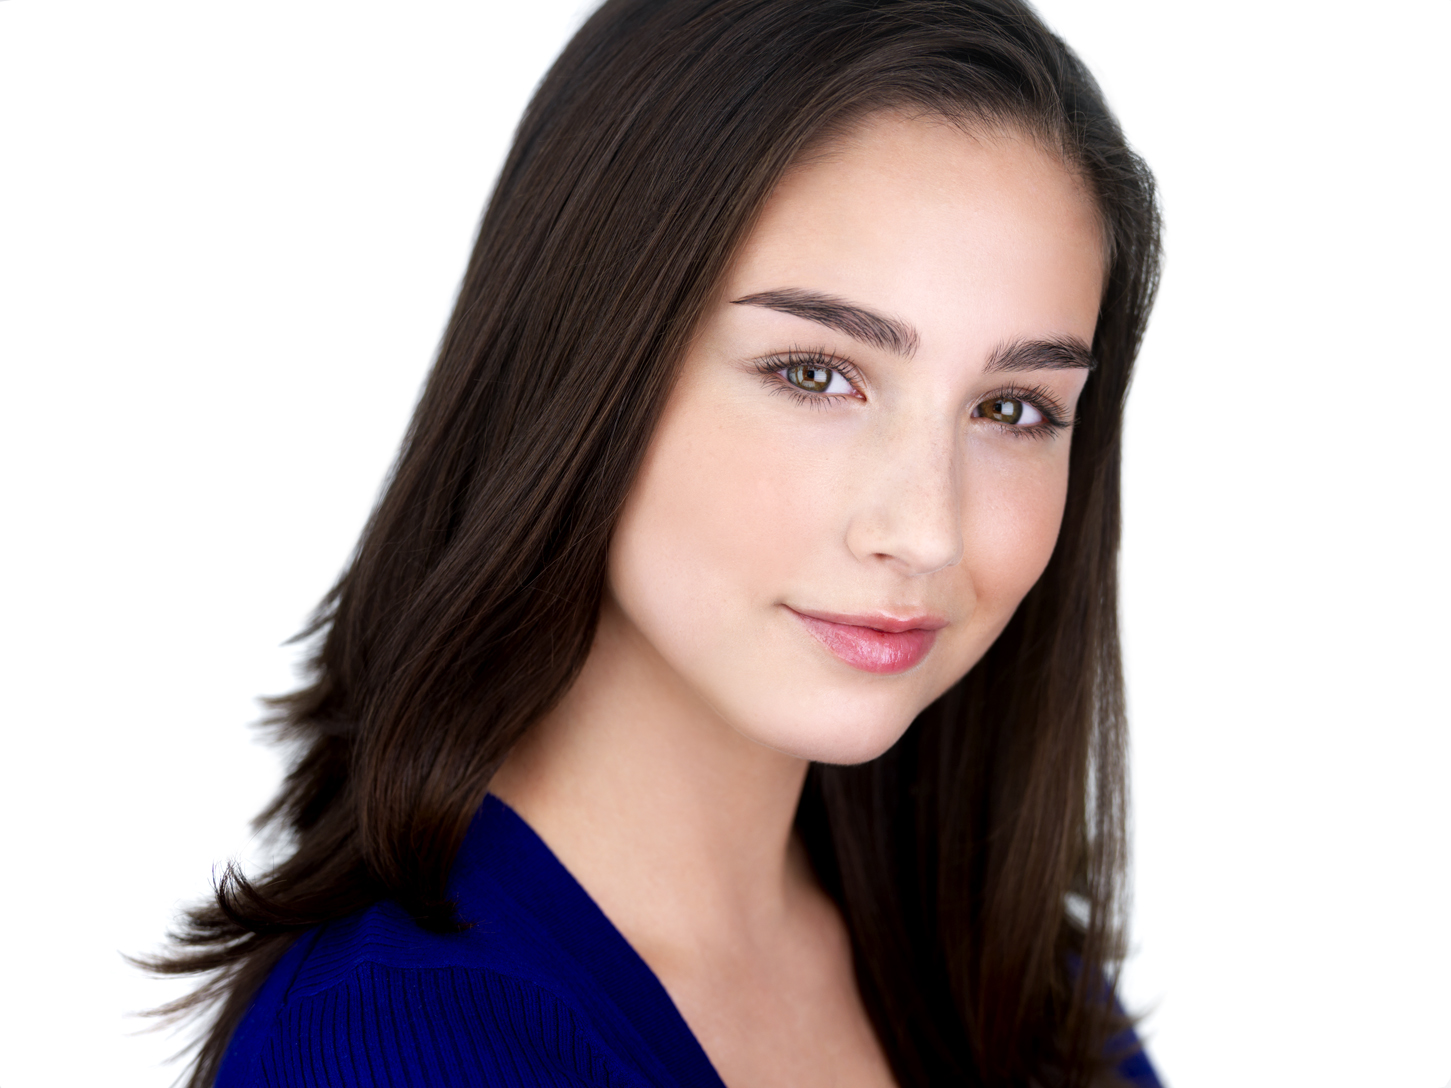 Enjoy Celebrity Radio's Molly Ephraim Interview – Broadway 2002…. Molly Ephraim is the top American actress who has appeared in films, on television and on Broadway. Molly […]